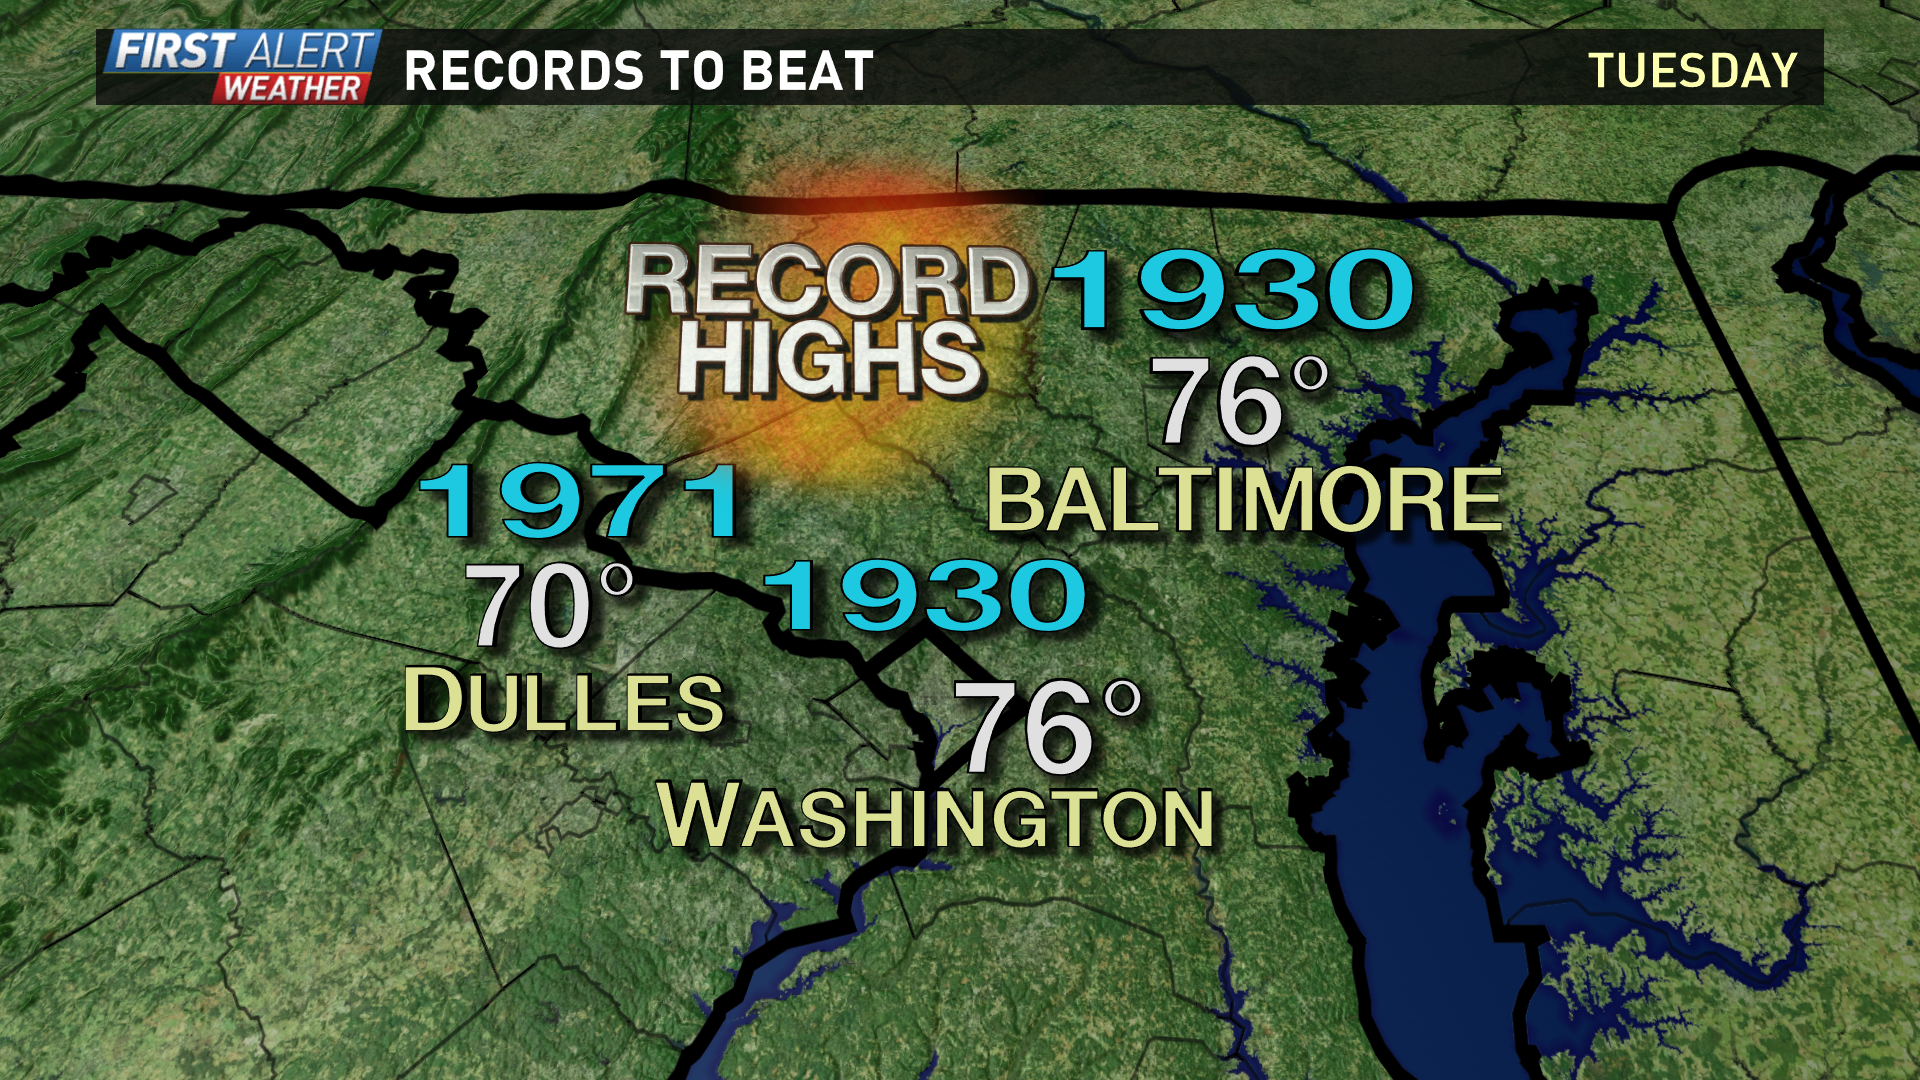 wusa9 com highs in the 70s near record warmth